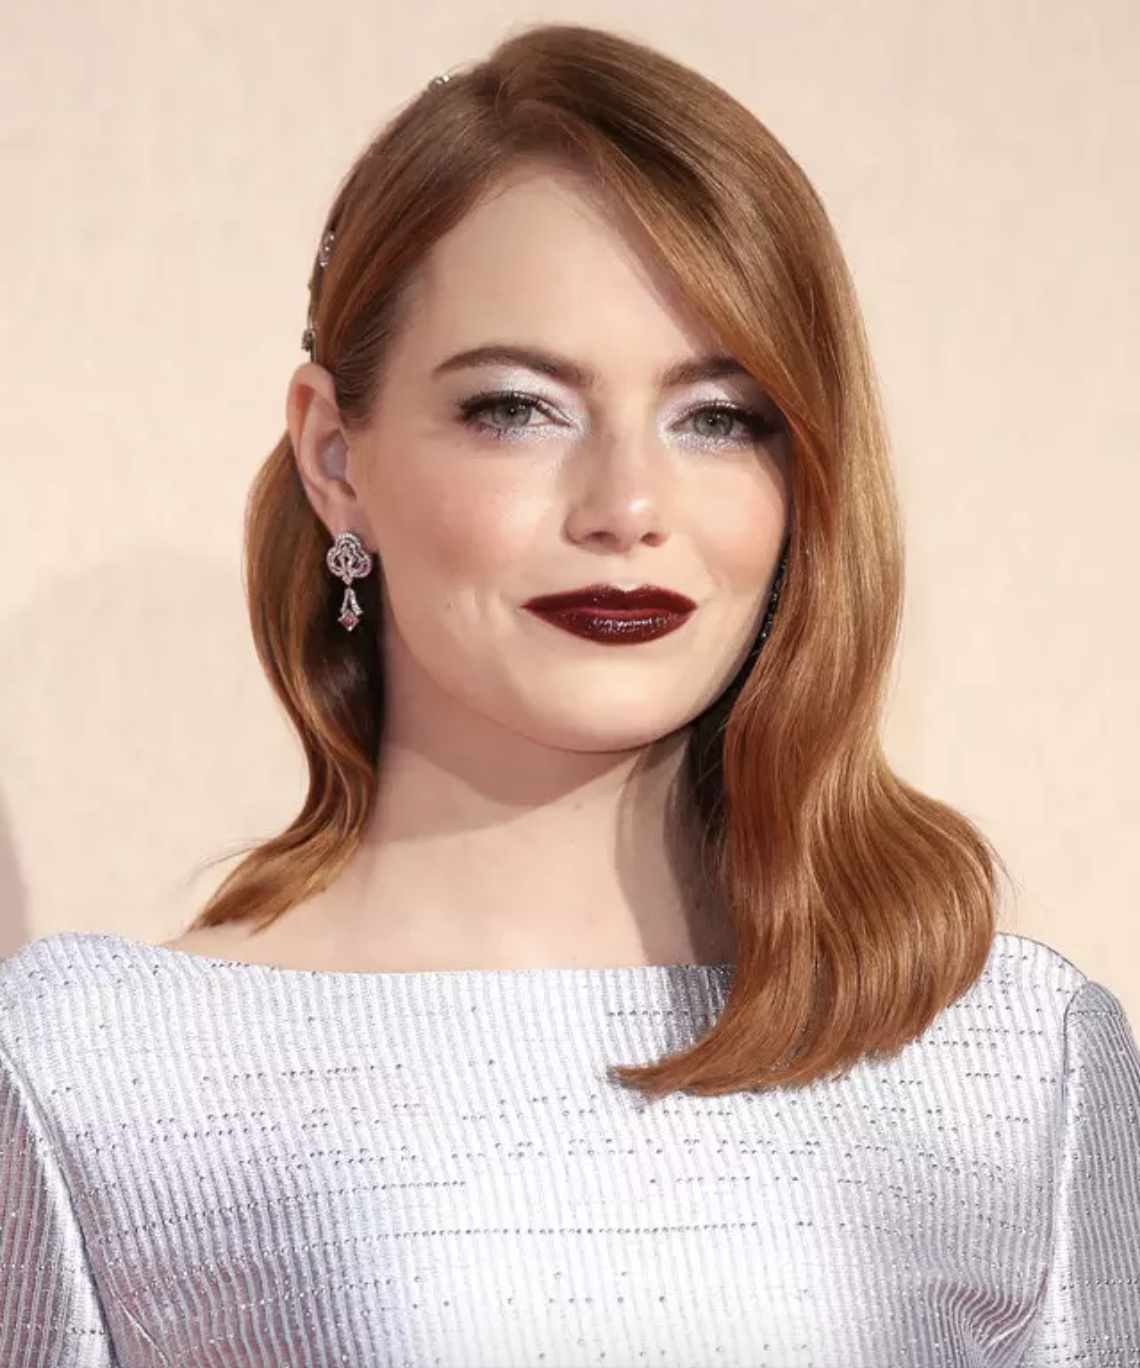 HAIR DYES AND HAIR COLORING: THE MOST FASHIONABLE 2019 COLORS 1